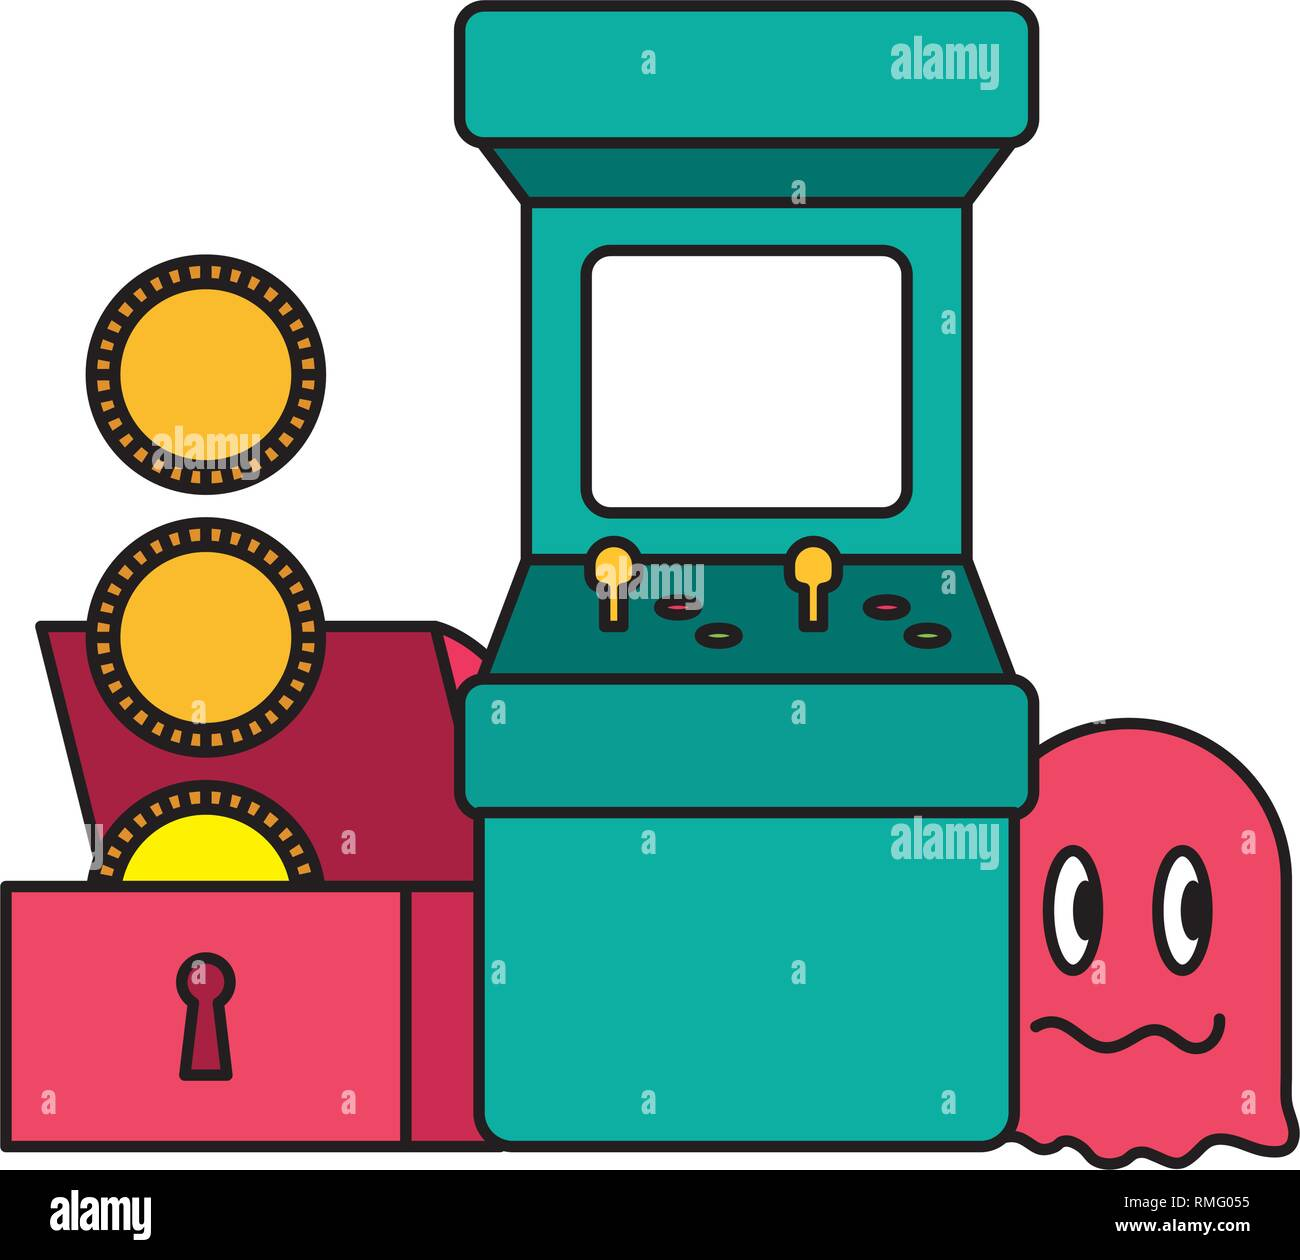 arcade chest coins ghost video game - Stock Vector